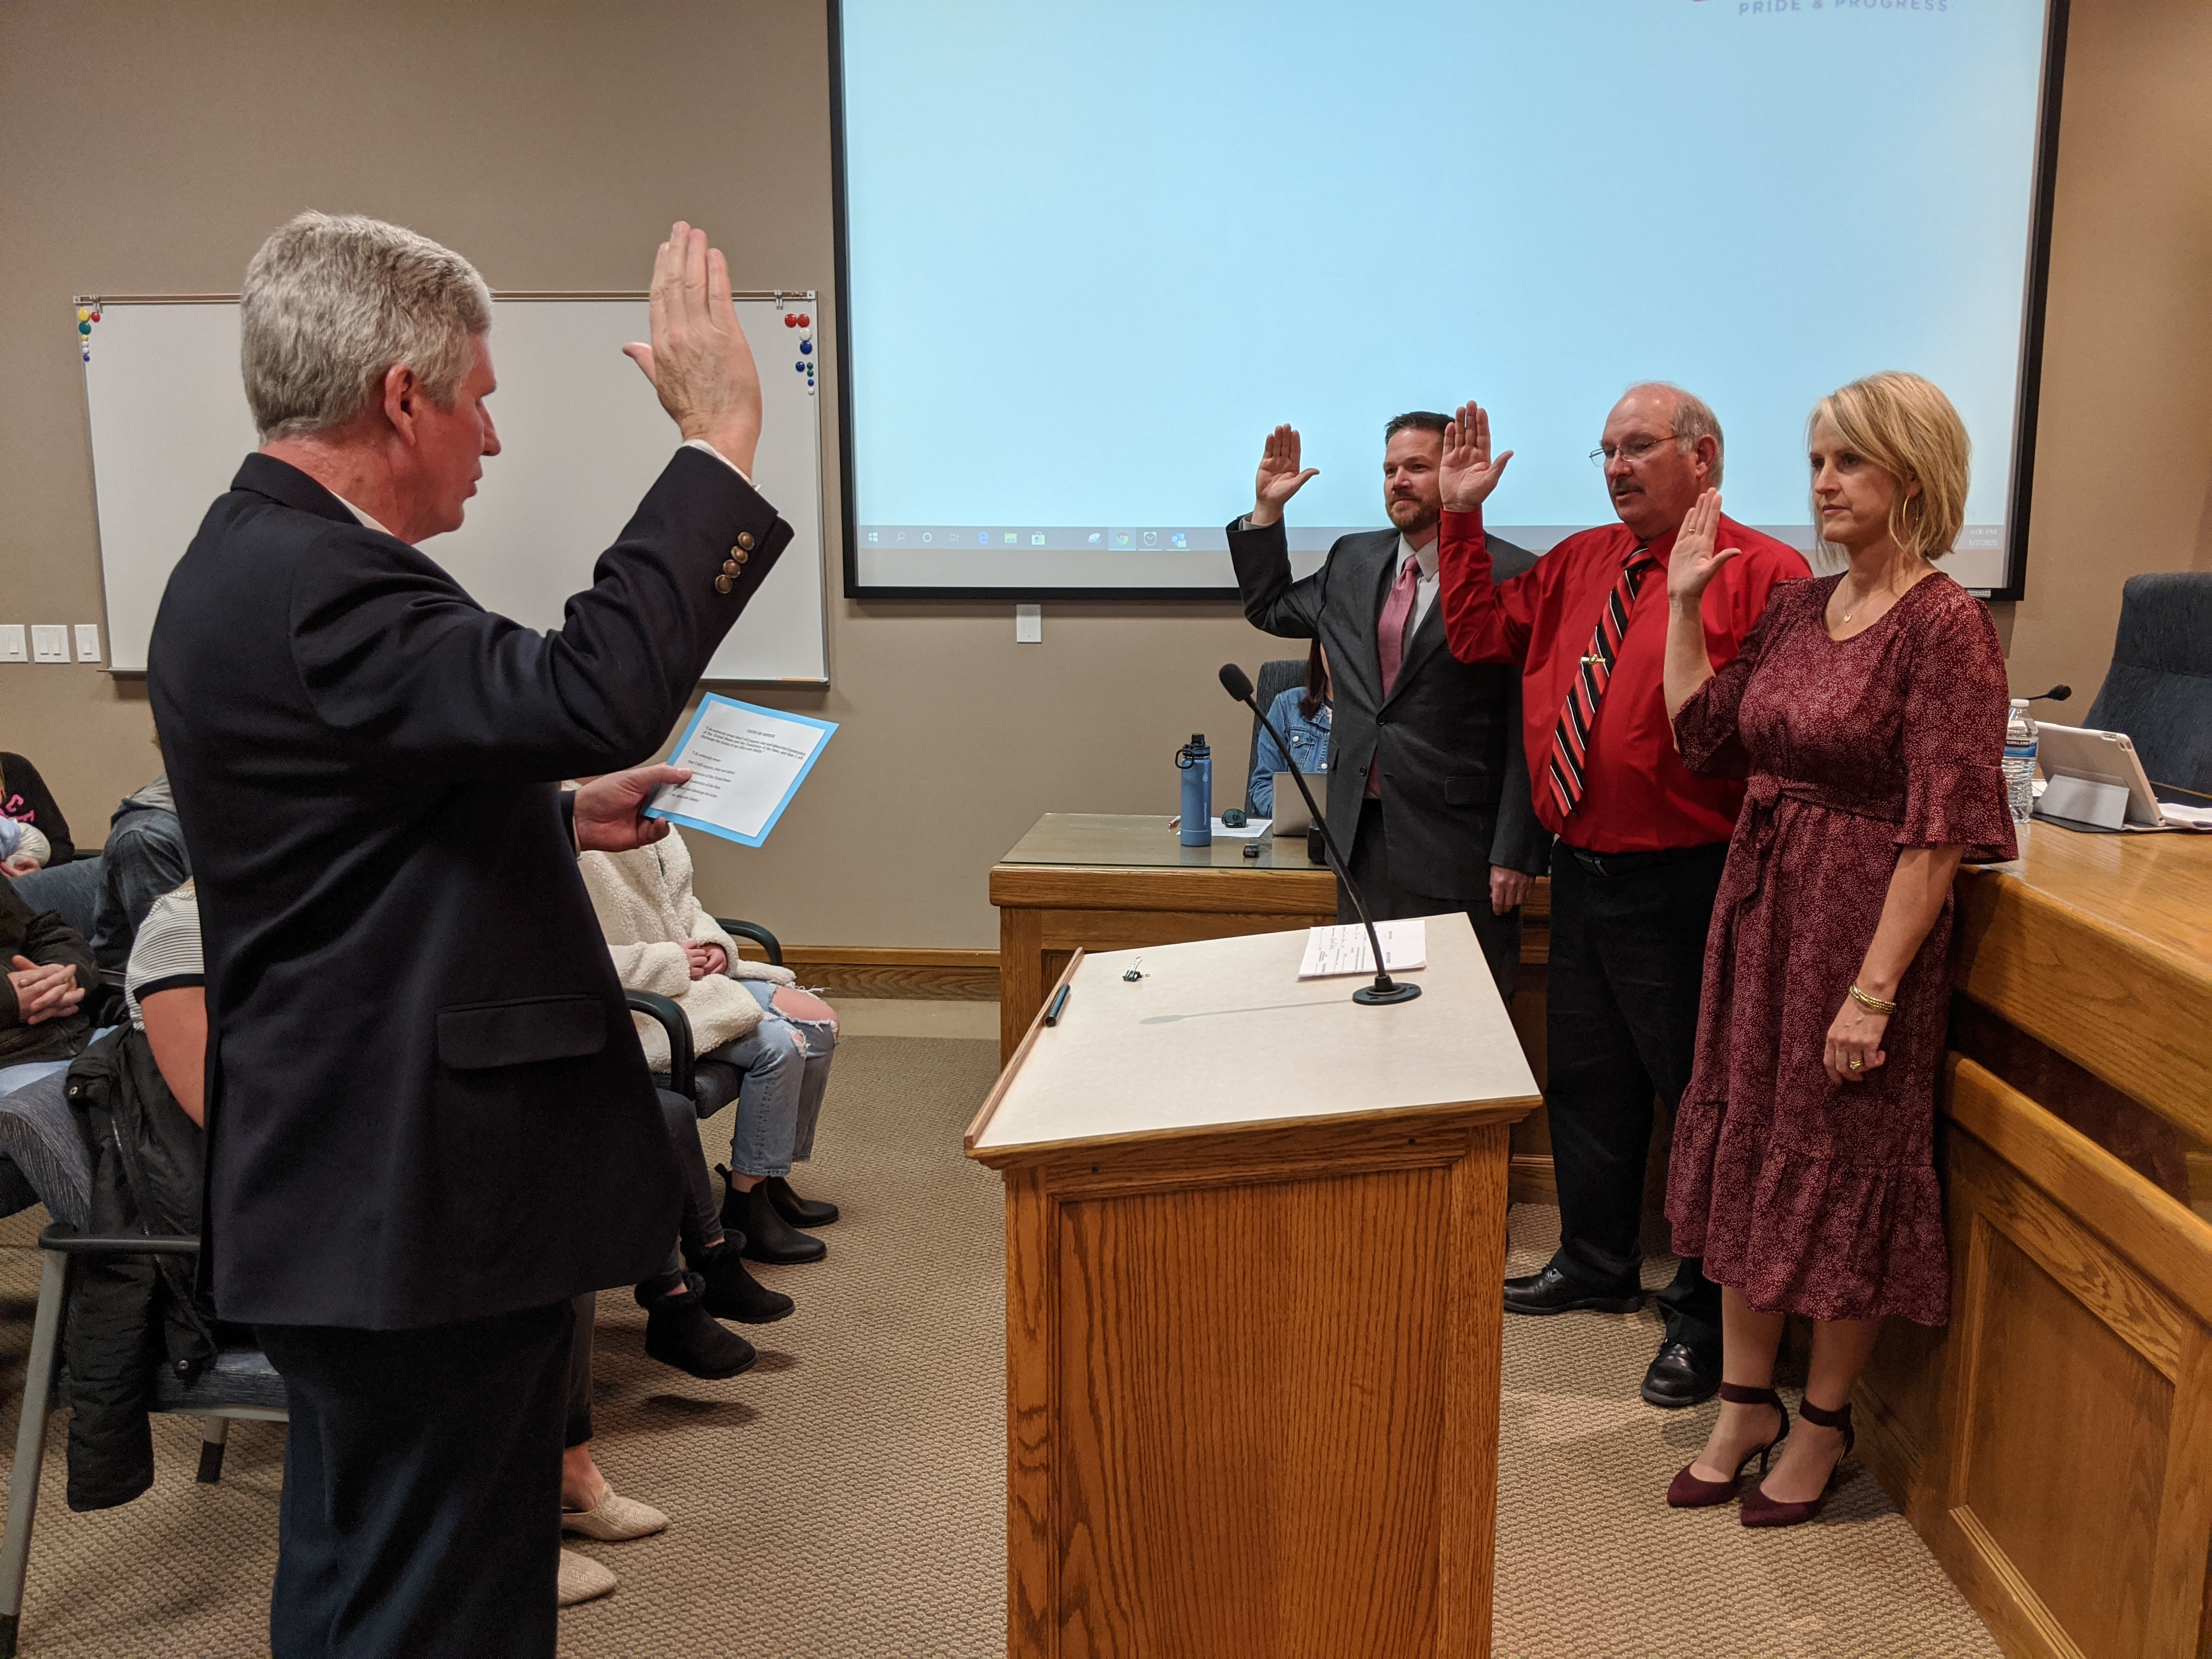 City Council Members Stacy Beck, Chard Argyle, and Brandon Gordon take the Oath of Office, as administered by City Recorder Kent Clark.